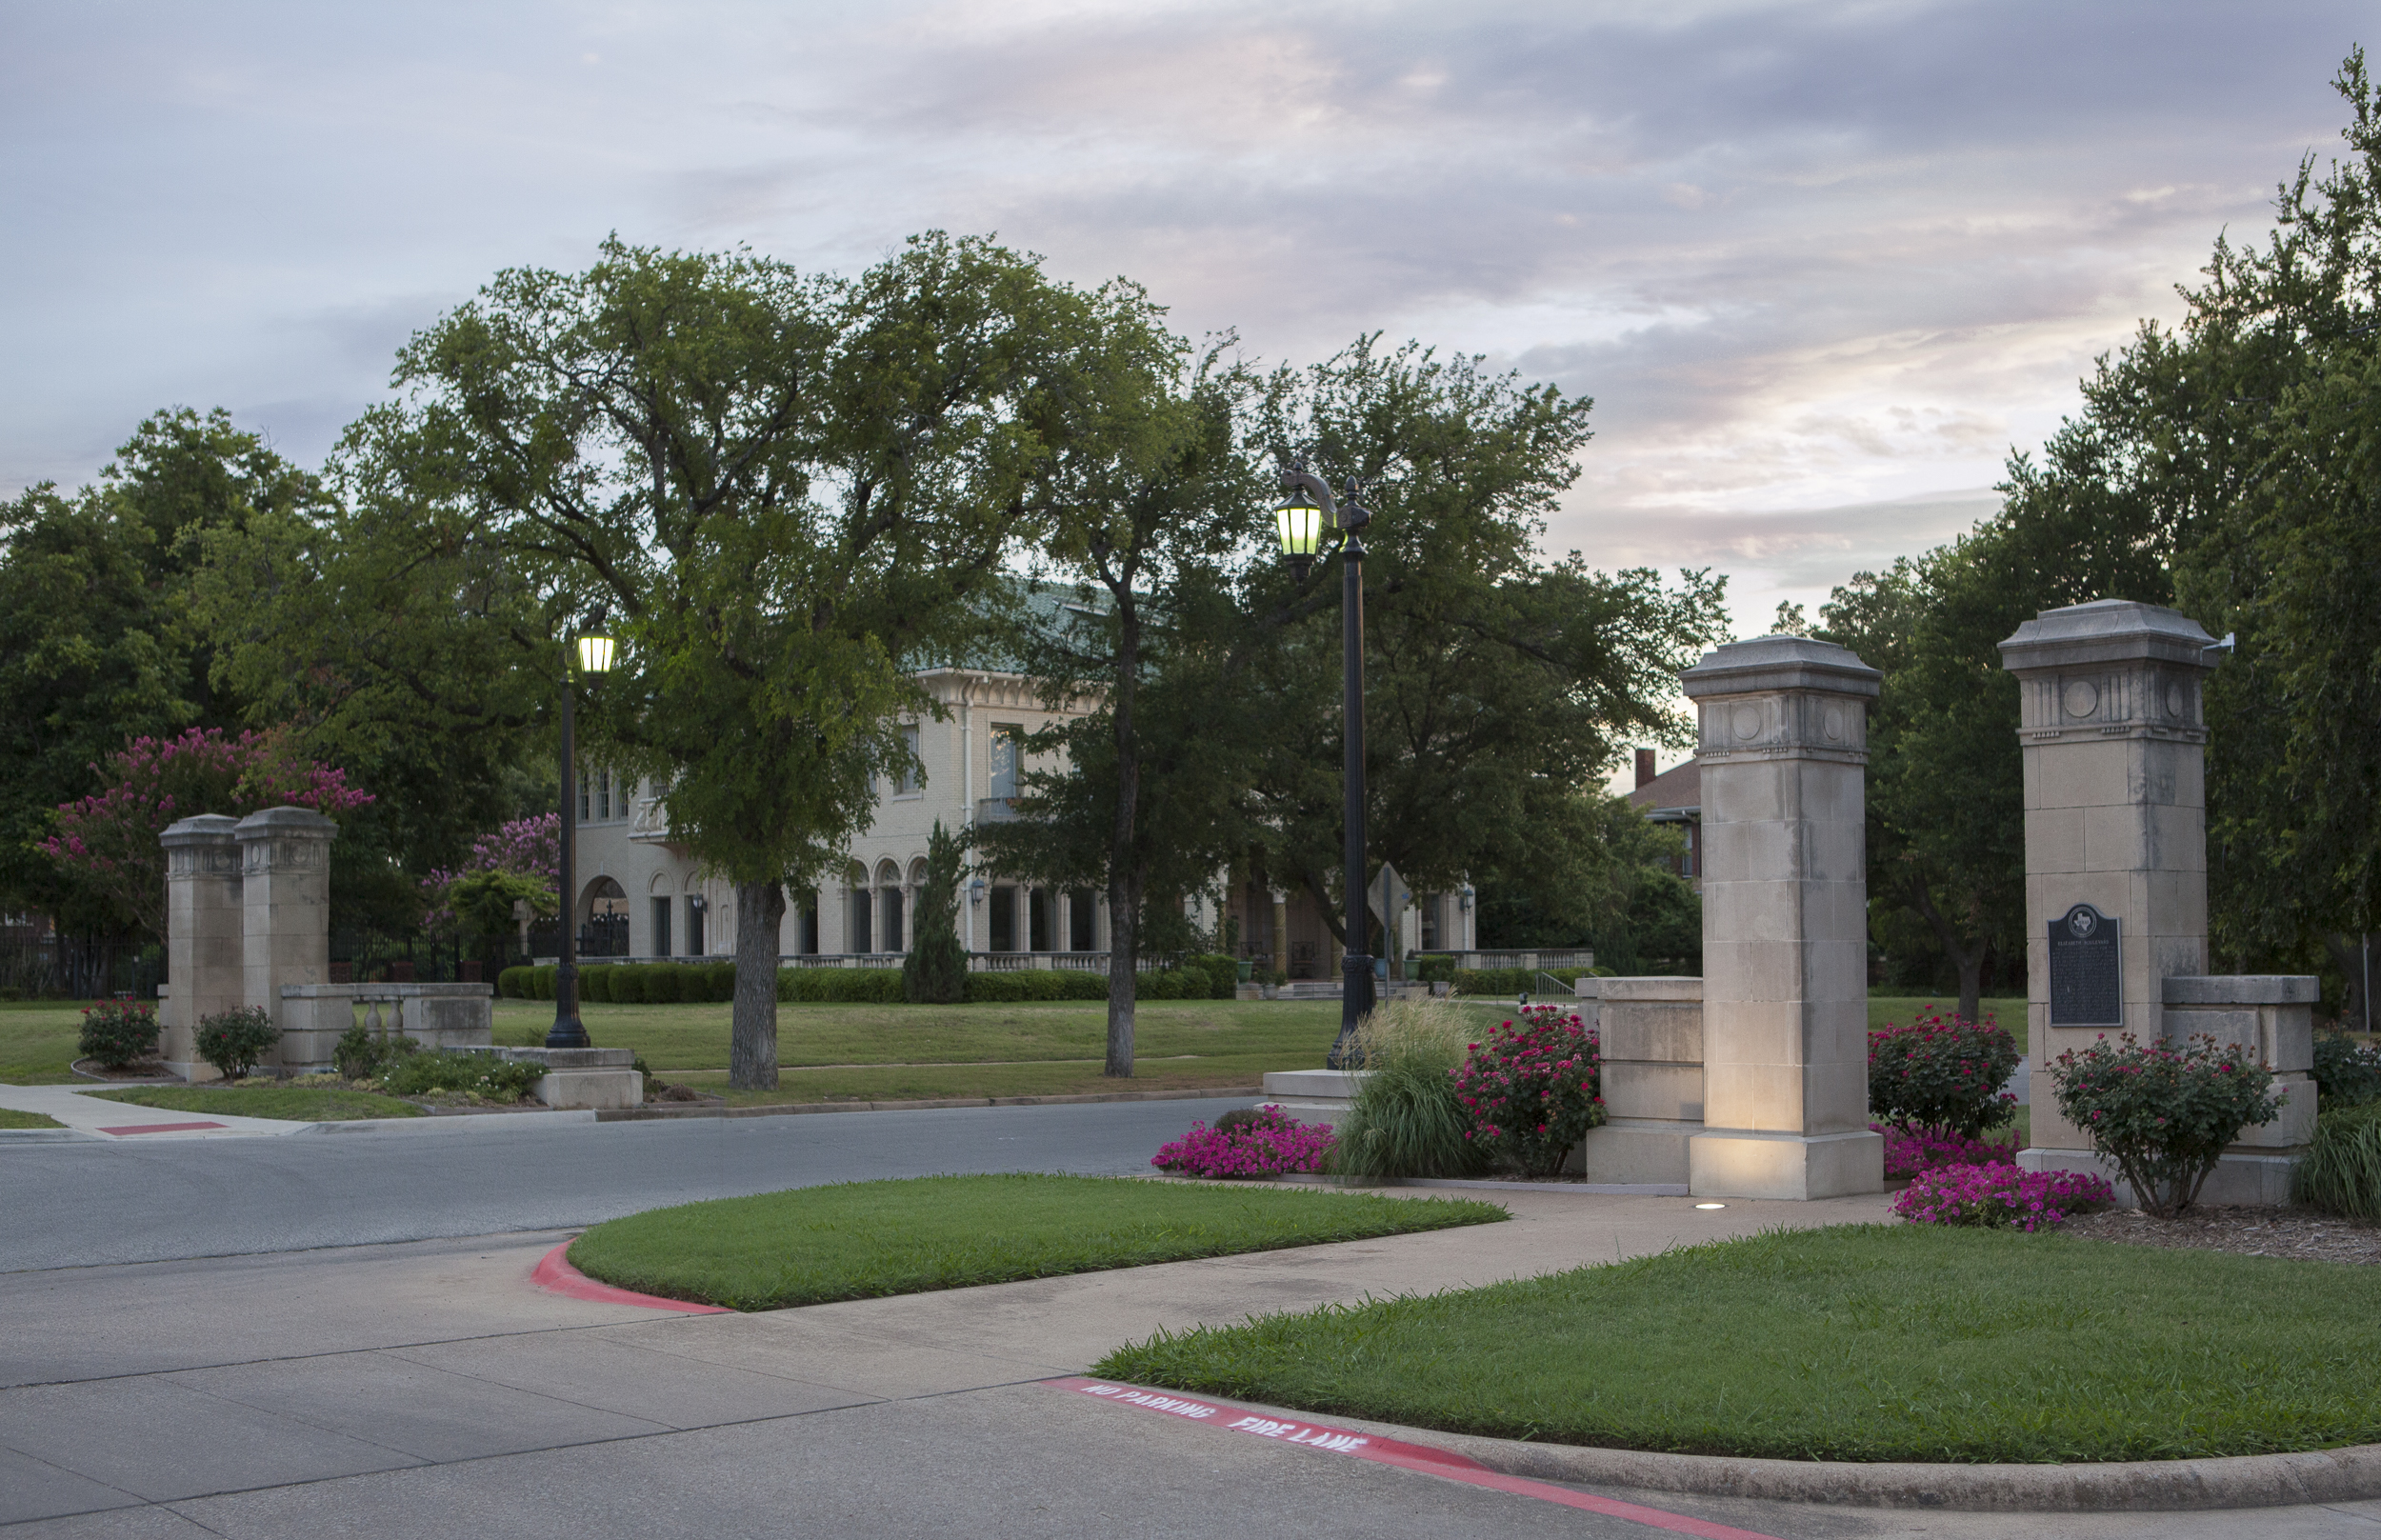 East entrance gates at Elizabeth Boulevard and to the neighborhood of Ryan Place, Fort Worth, Texas, USA Copyright © Kipp Baker, All rights reserved.